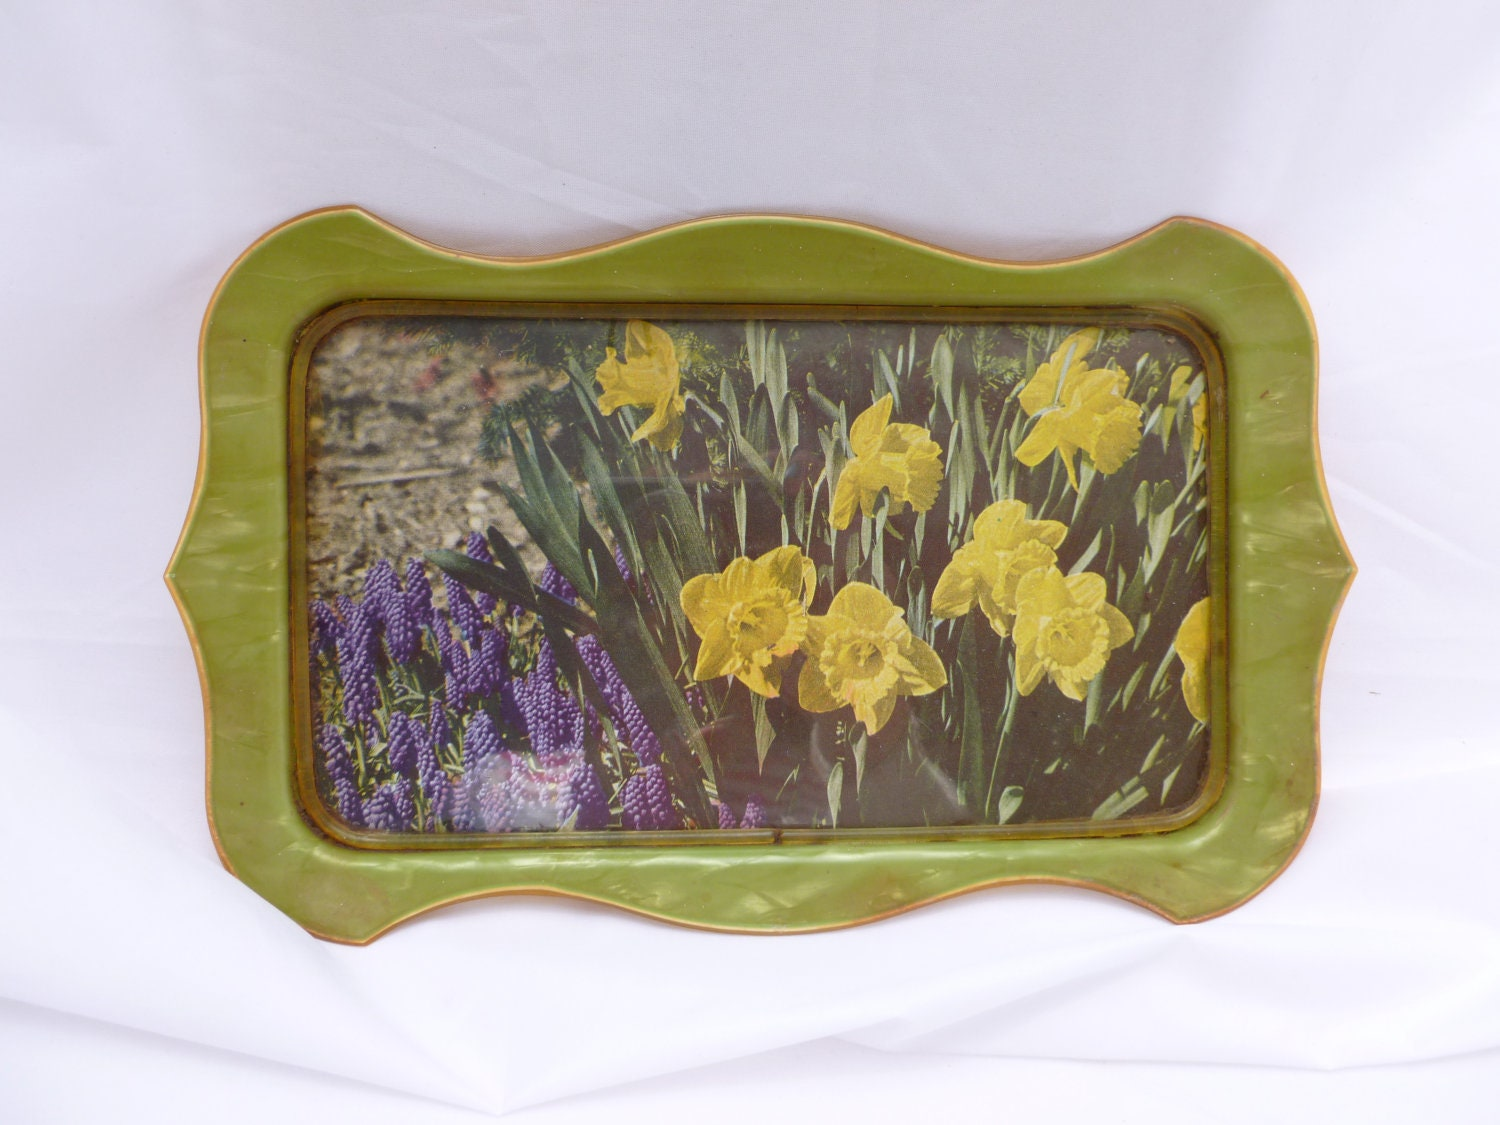 Decorative vanity trayart deco tray with daffodils vintage for Decorative bathroom tray